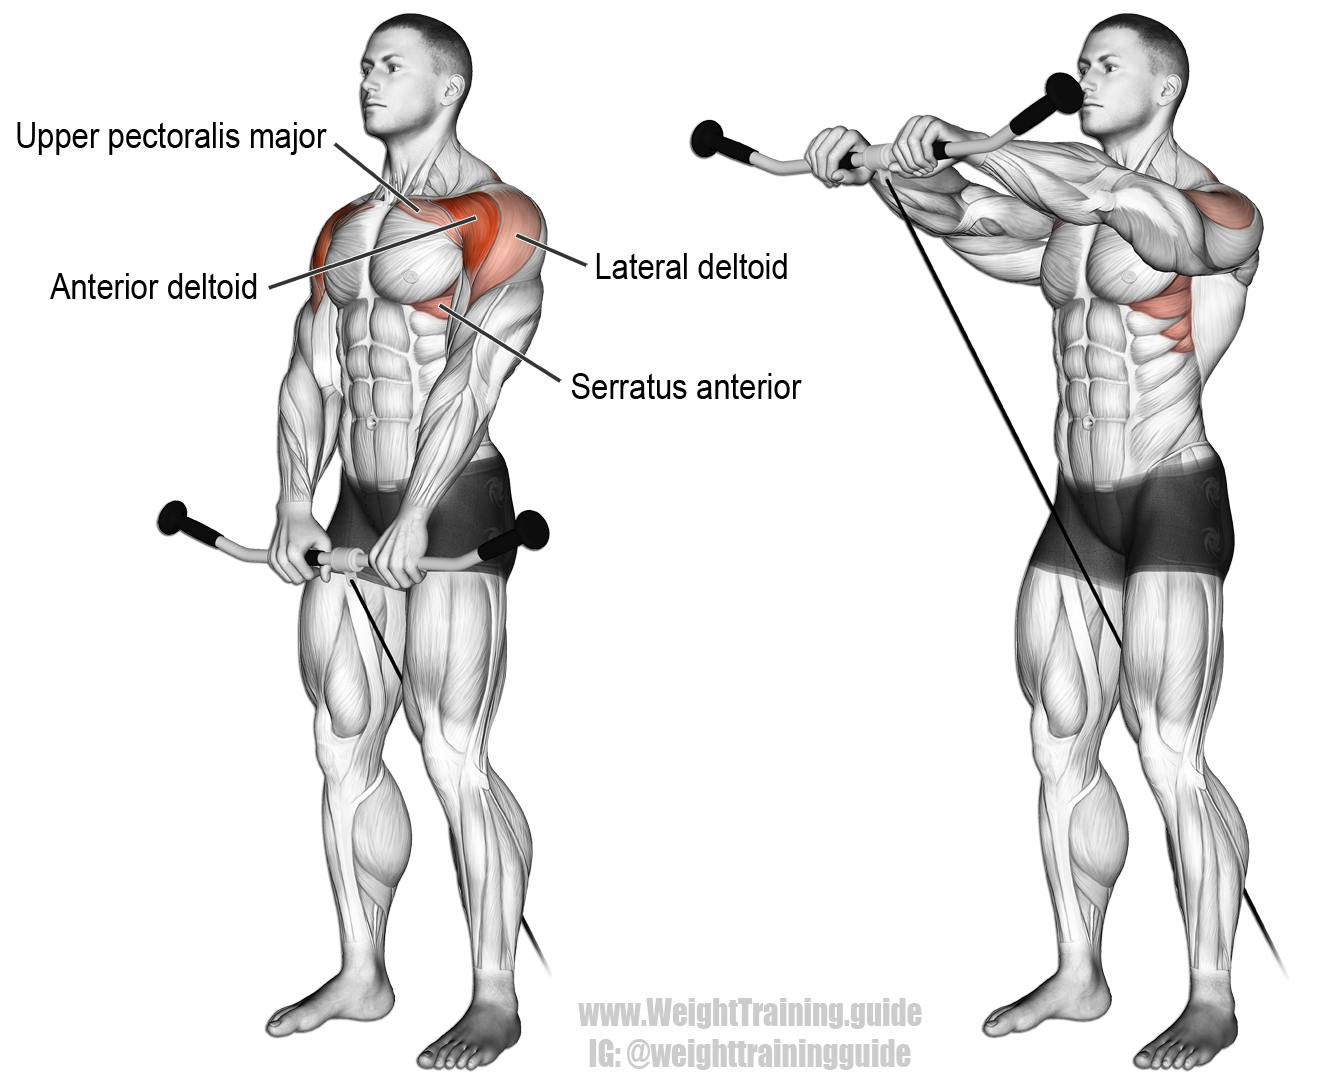 Cable front raise exercise instructions and video | Pinterest ...